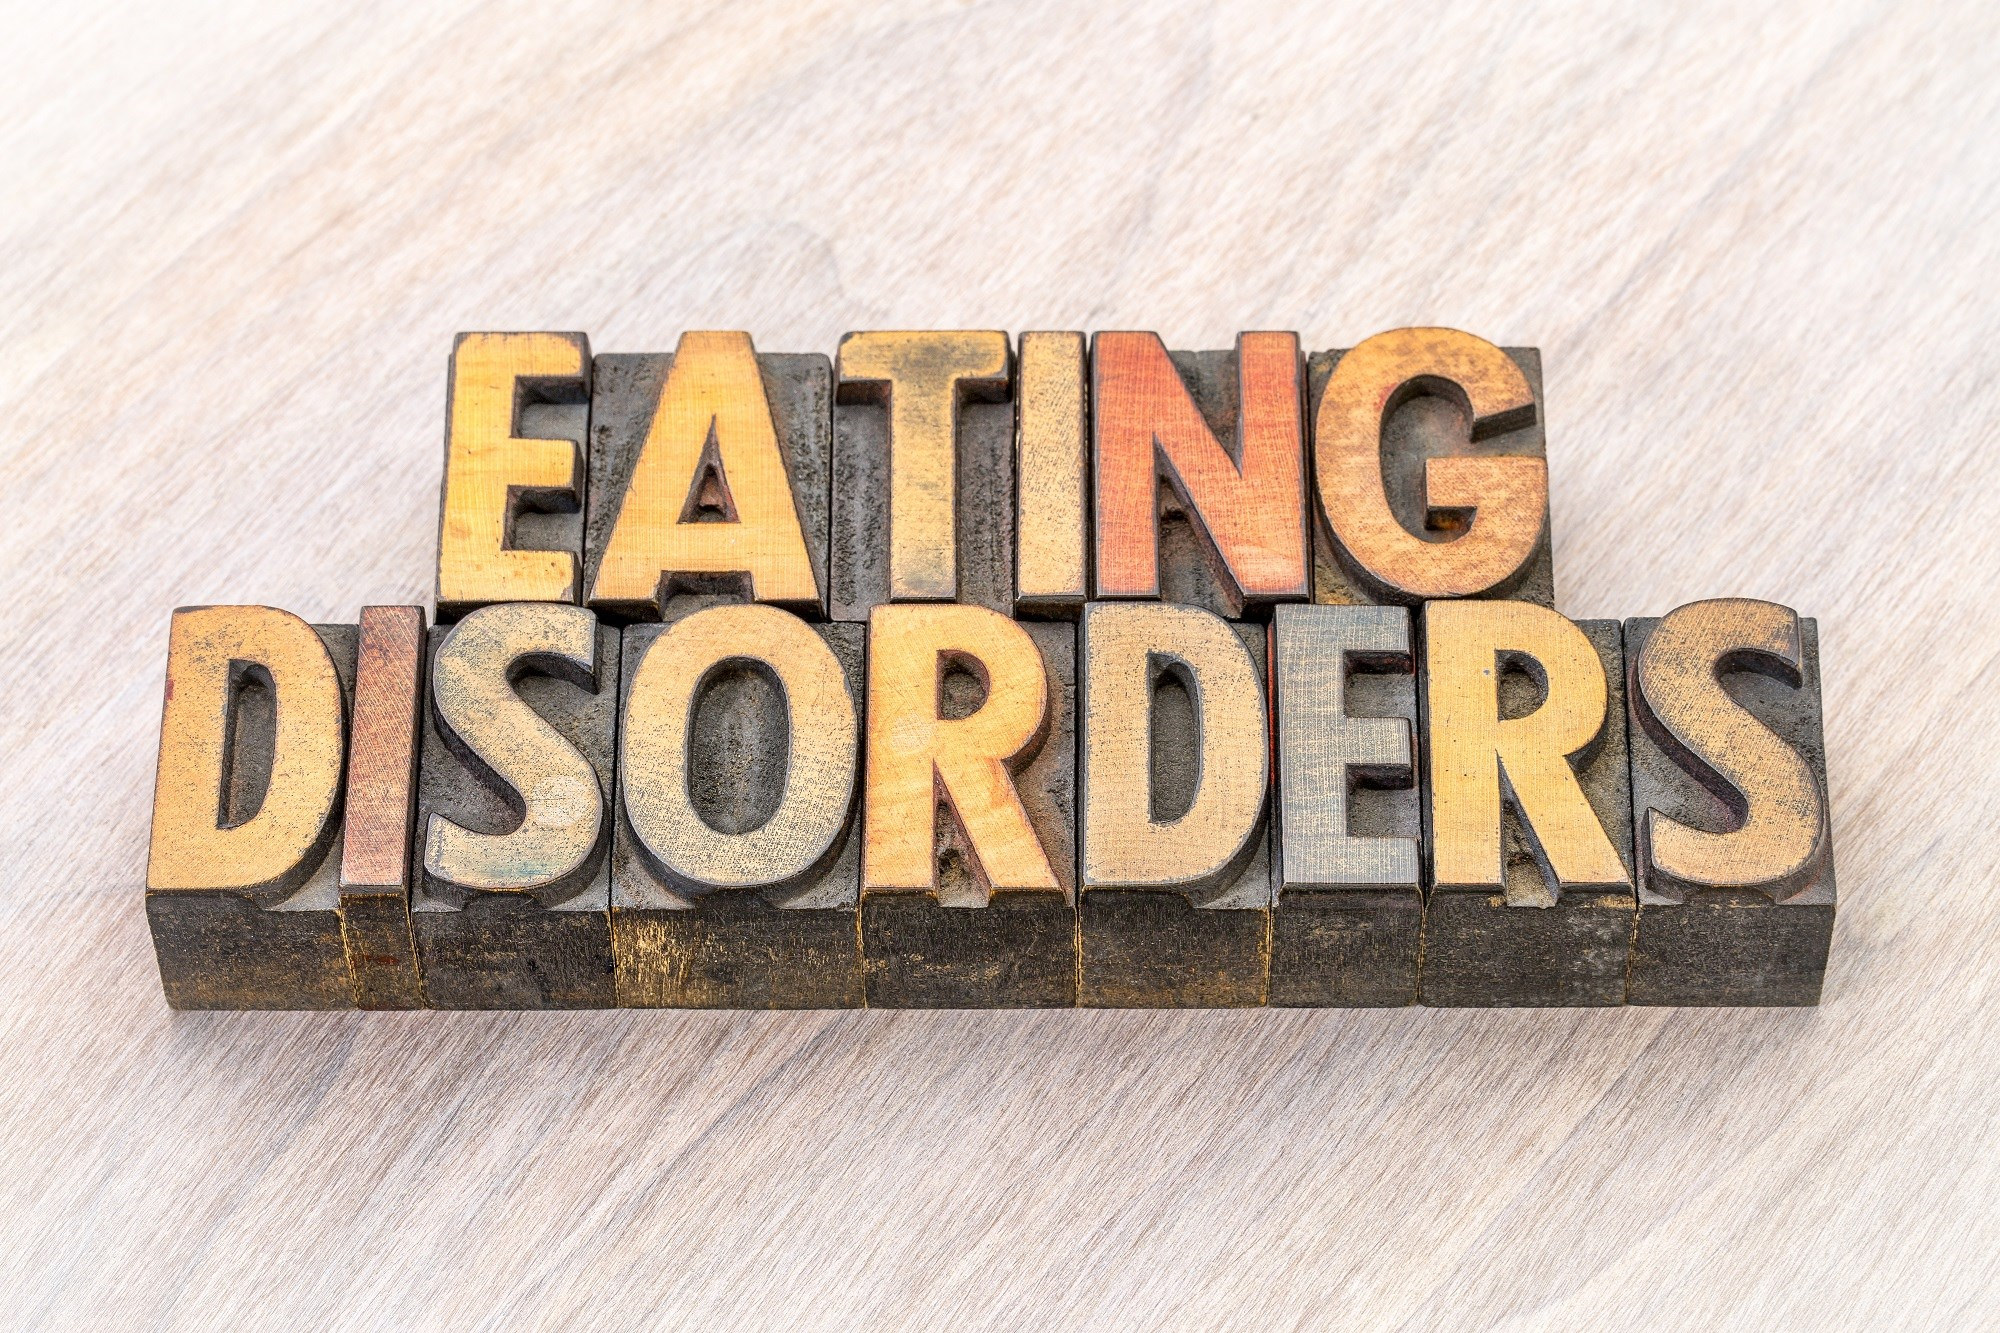 The overall prevalence of any eating disorders diagnosis was 1.4%.